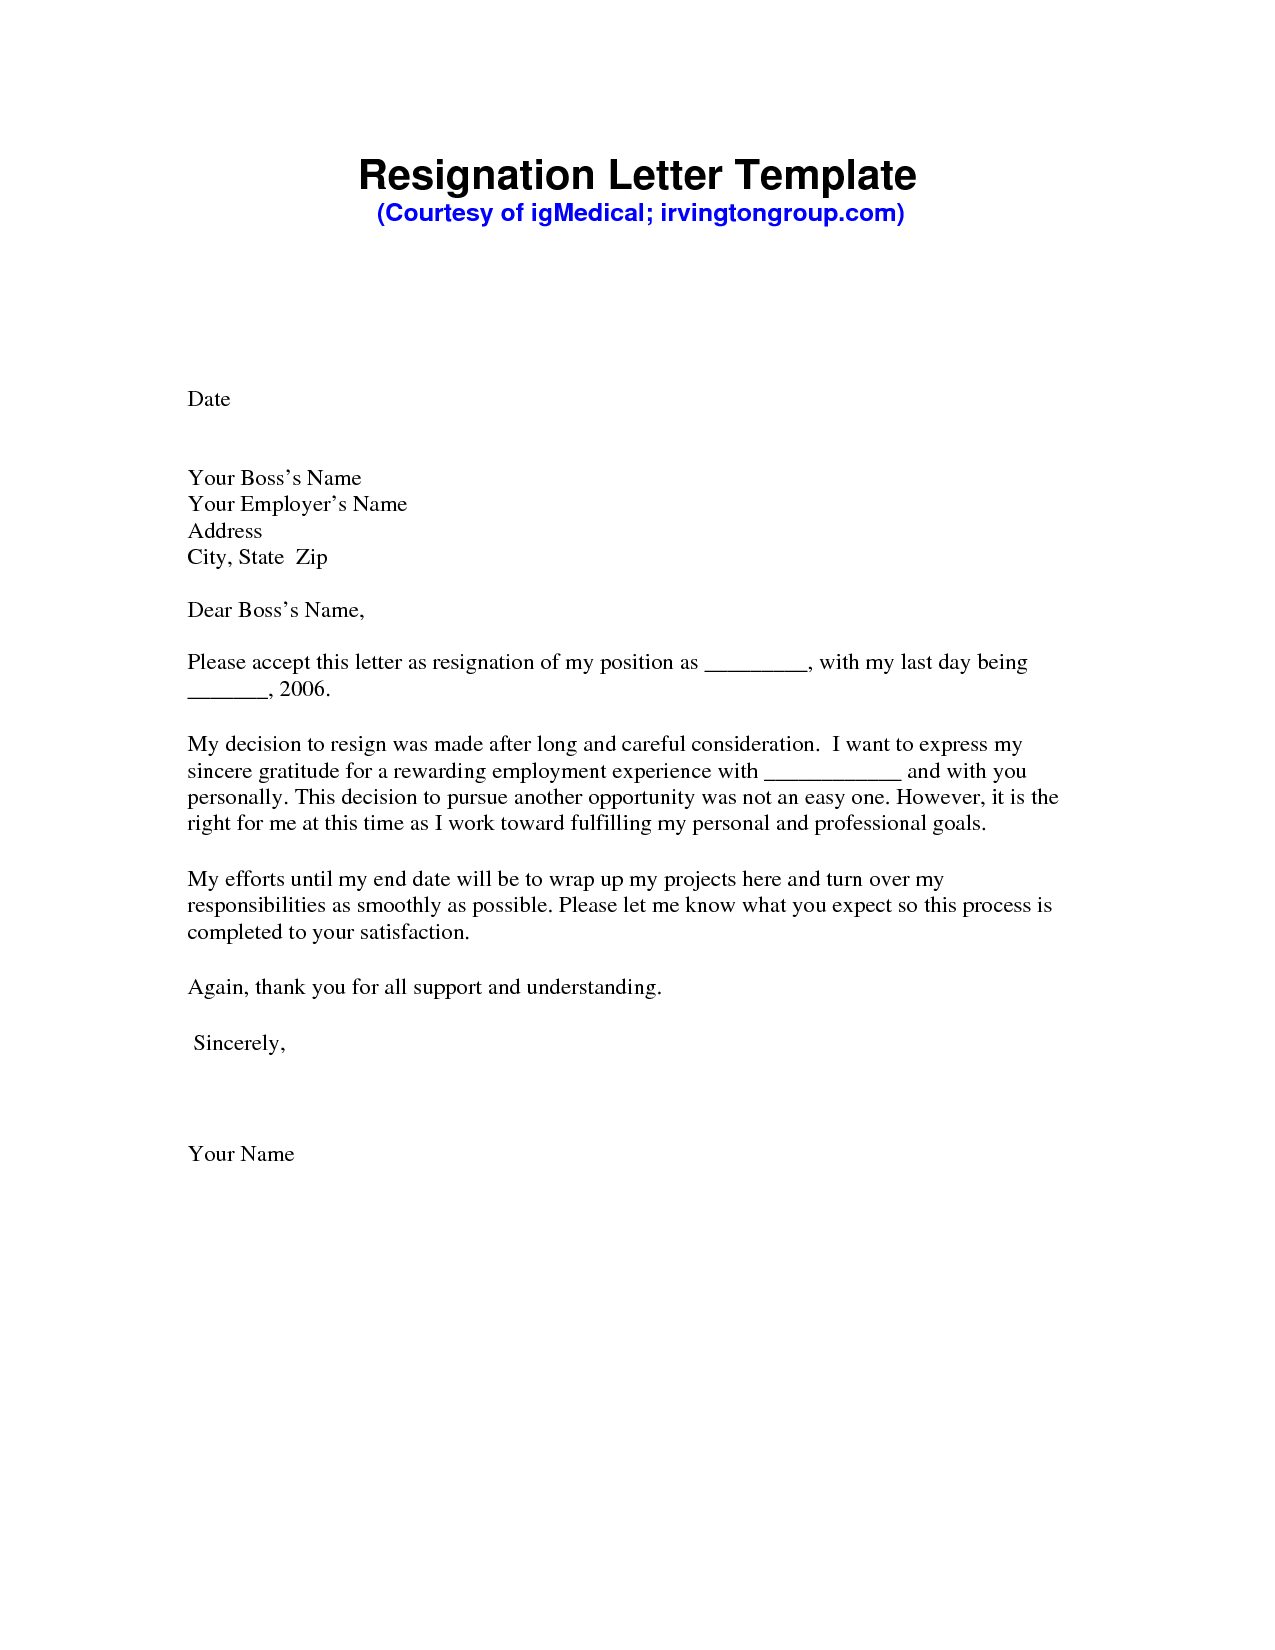 Resignation Letter Template Word Free - Resignation Letter Sample Pdf Resignation Letter